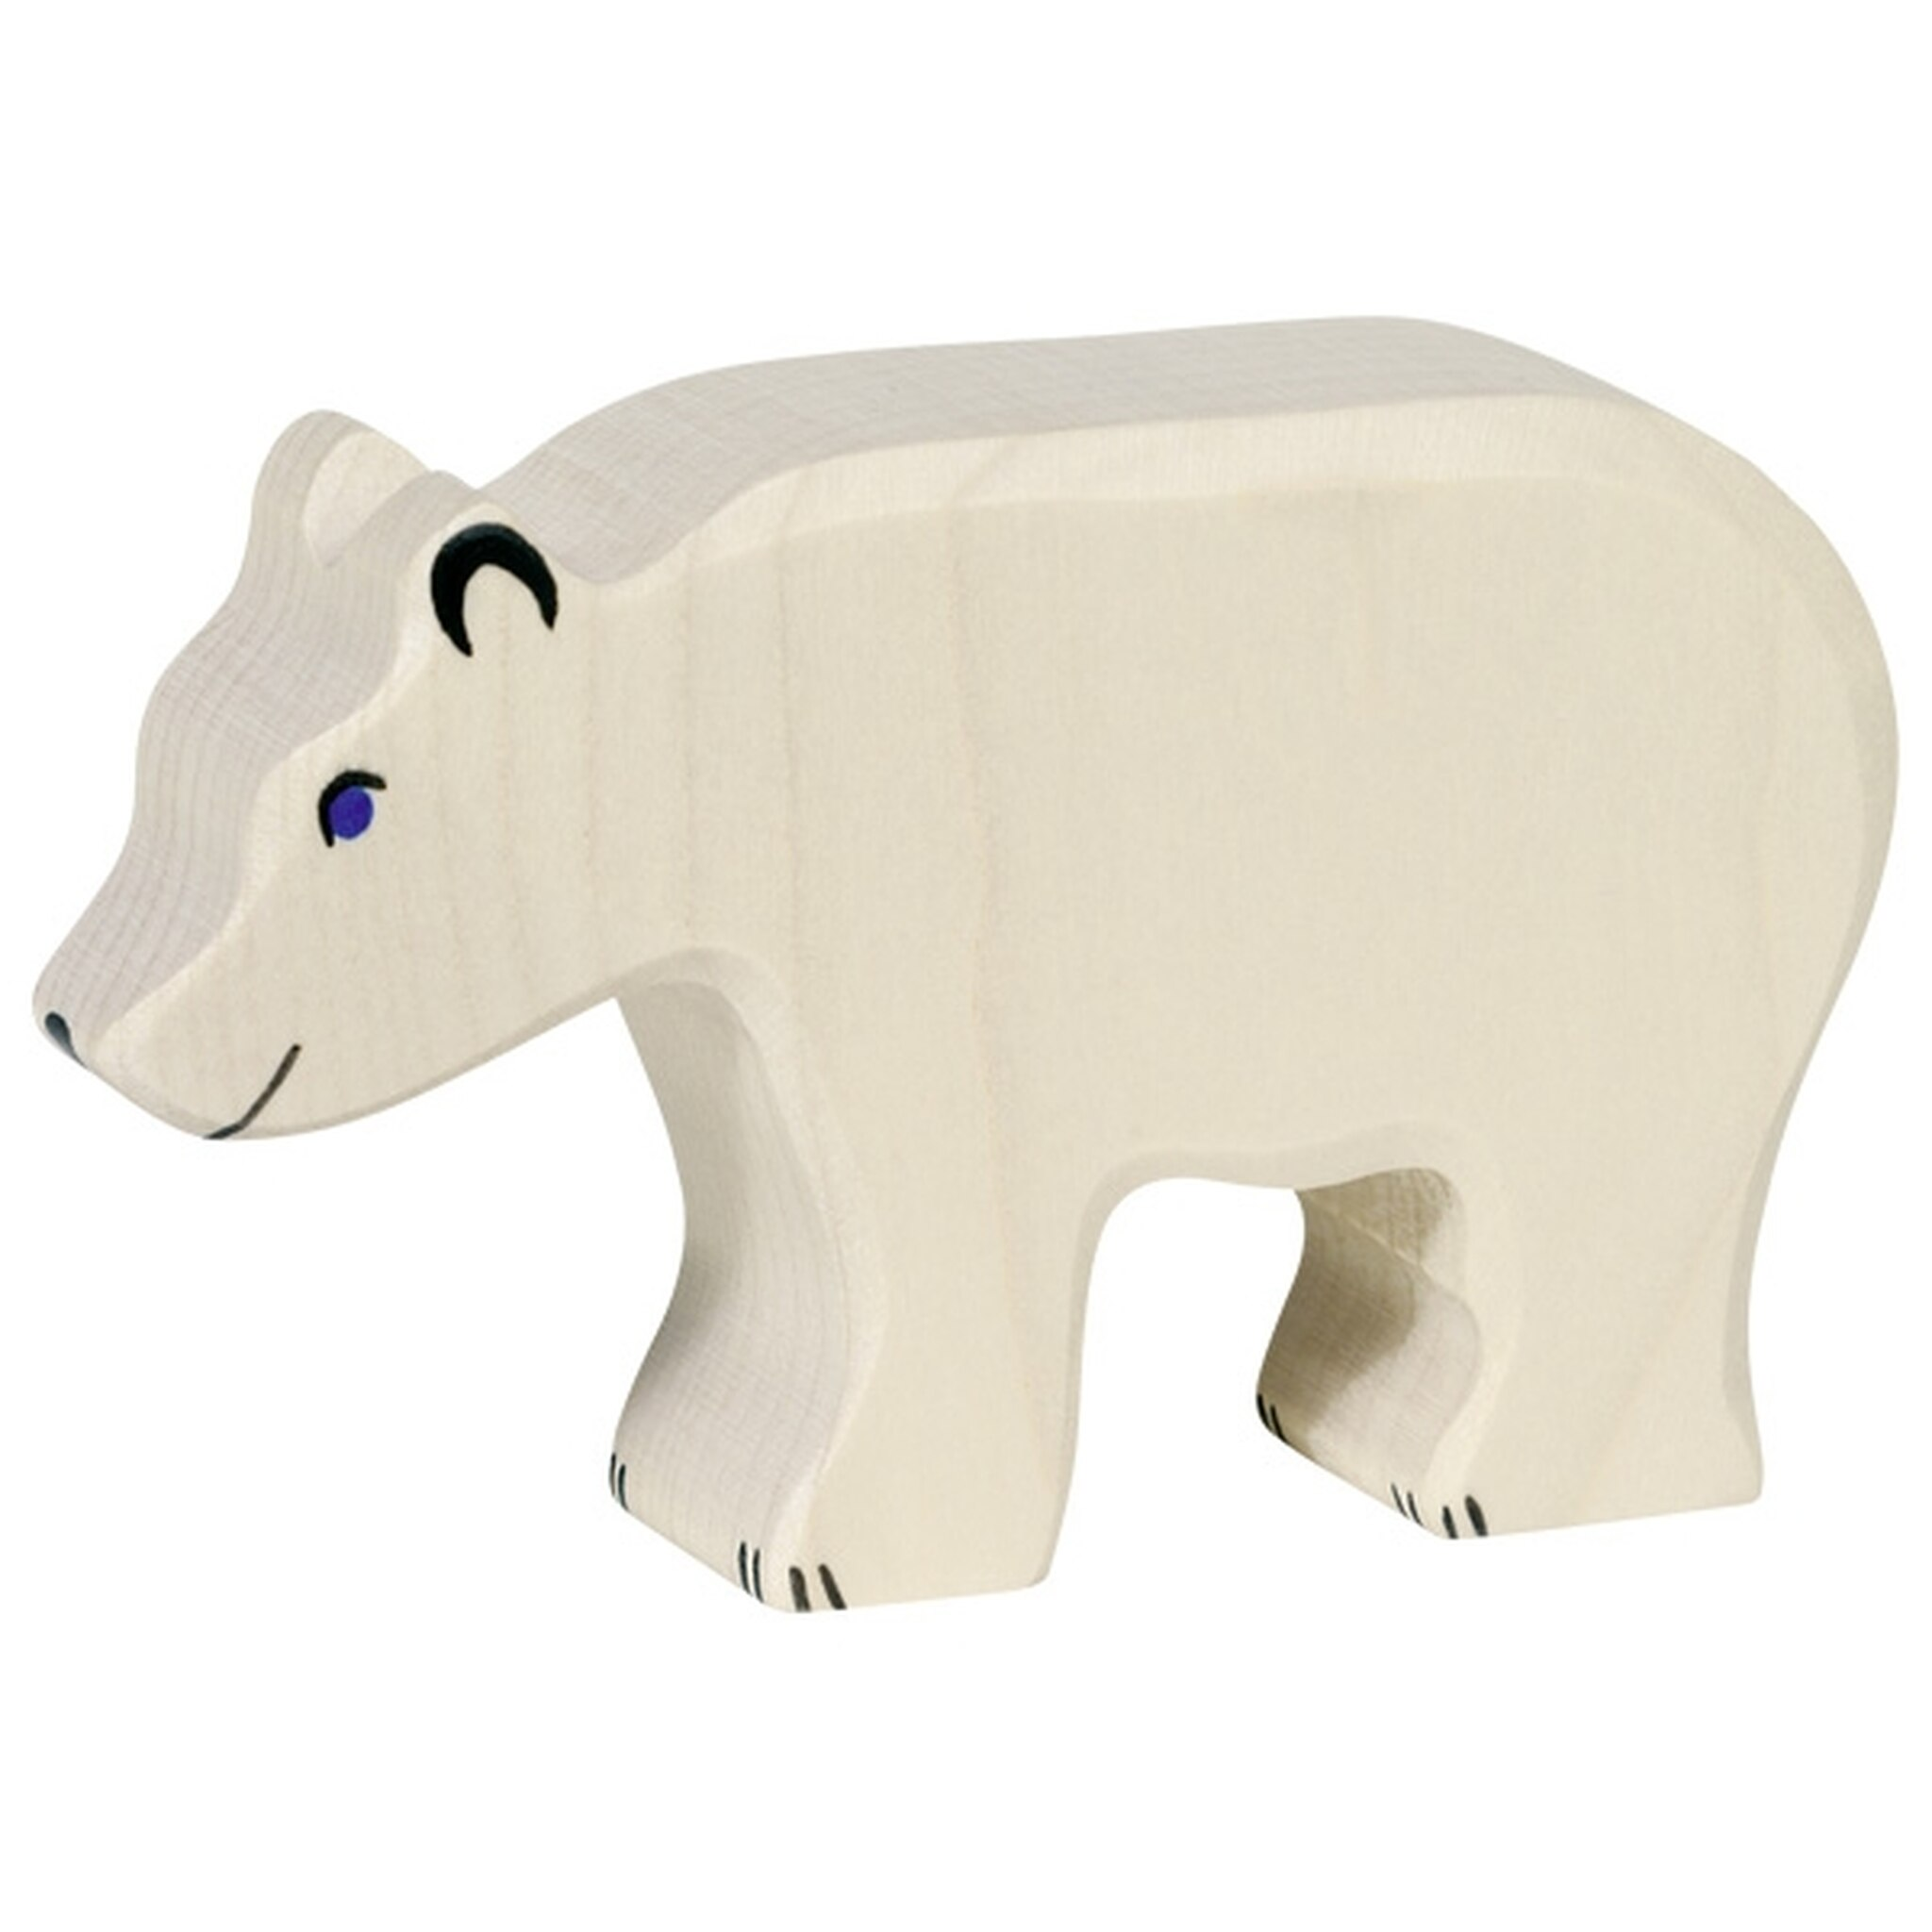 Holztiger Small Polar Bear Head Down Image